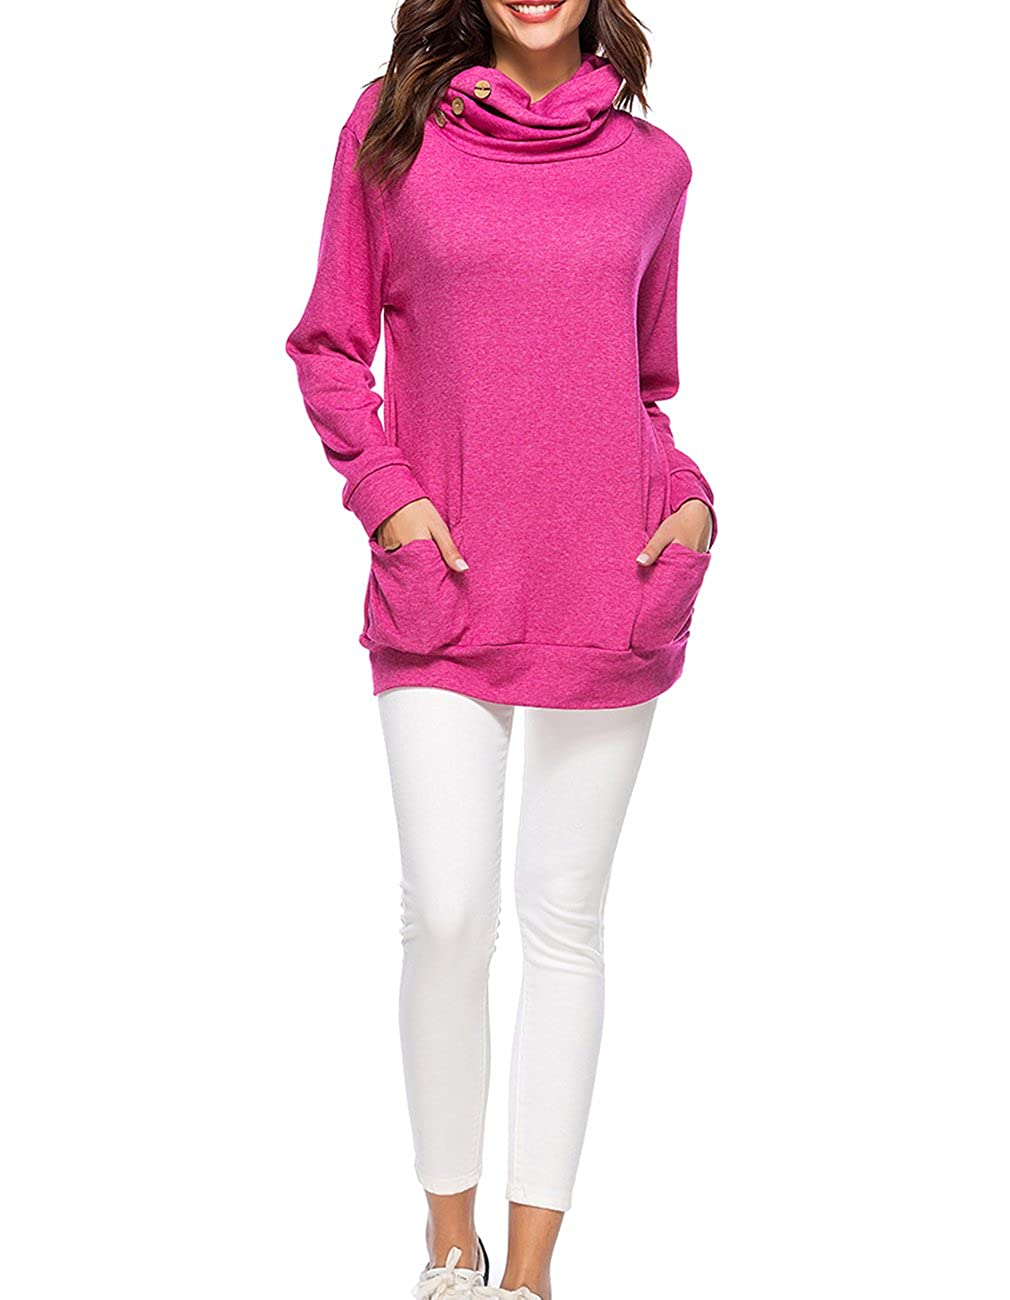 Defal Womens Long Sleeve Button Cowl Neck Tunic Top Casual Slim Sweatshirt with Pockets for Leggings